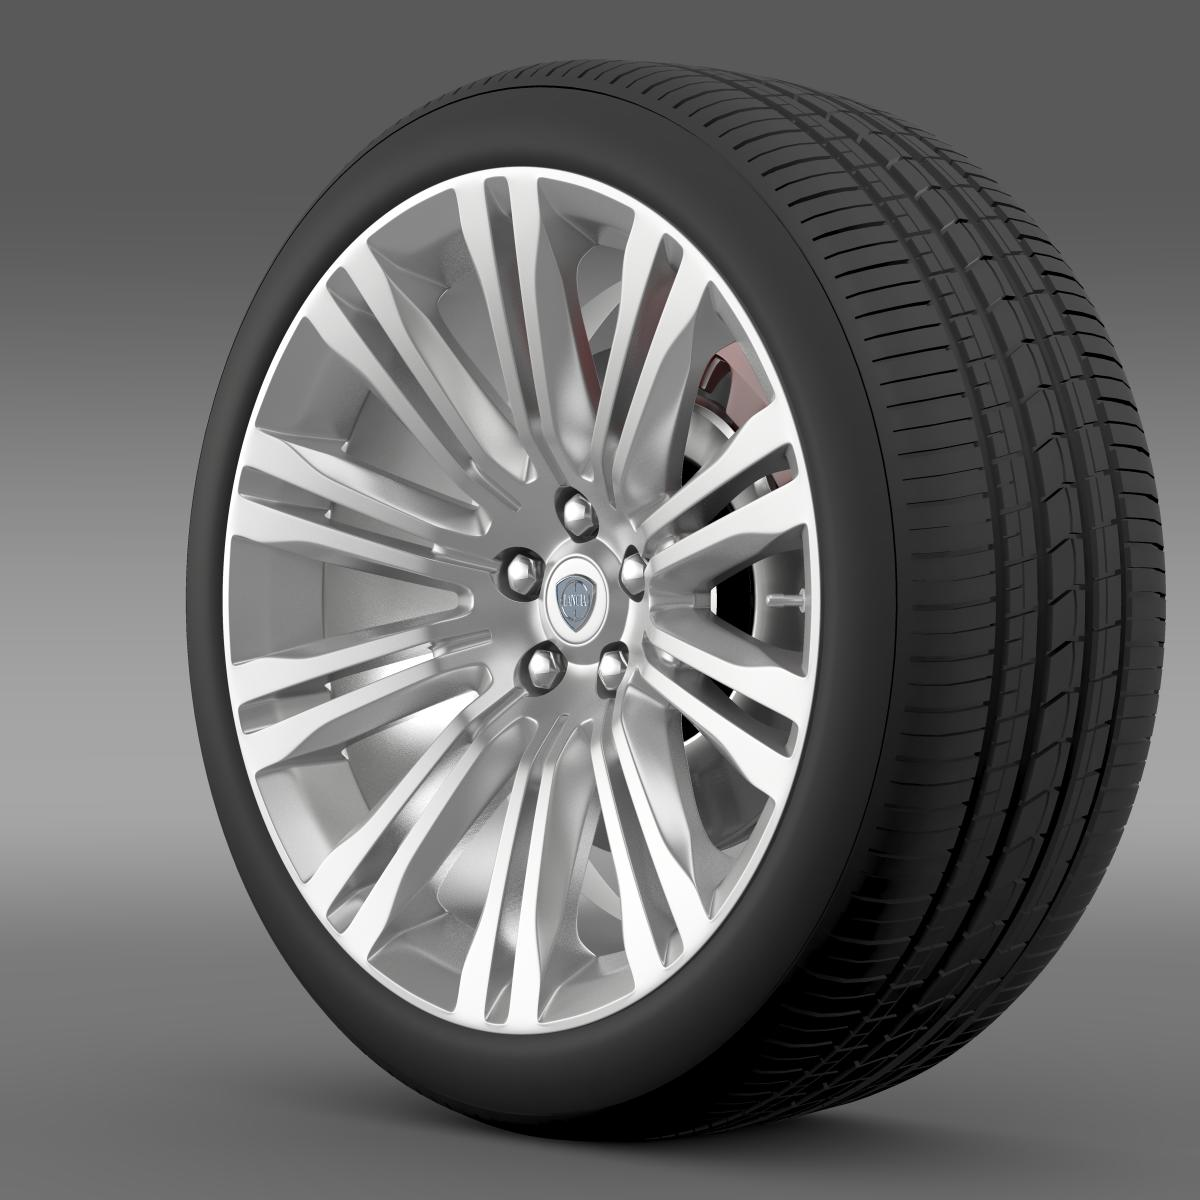 lancia thema 2014 wheel 3d model 3ds max fbx c4d lwo ma mb hrc xsi obj 210728